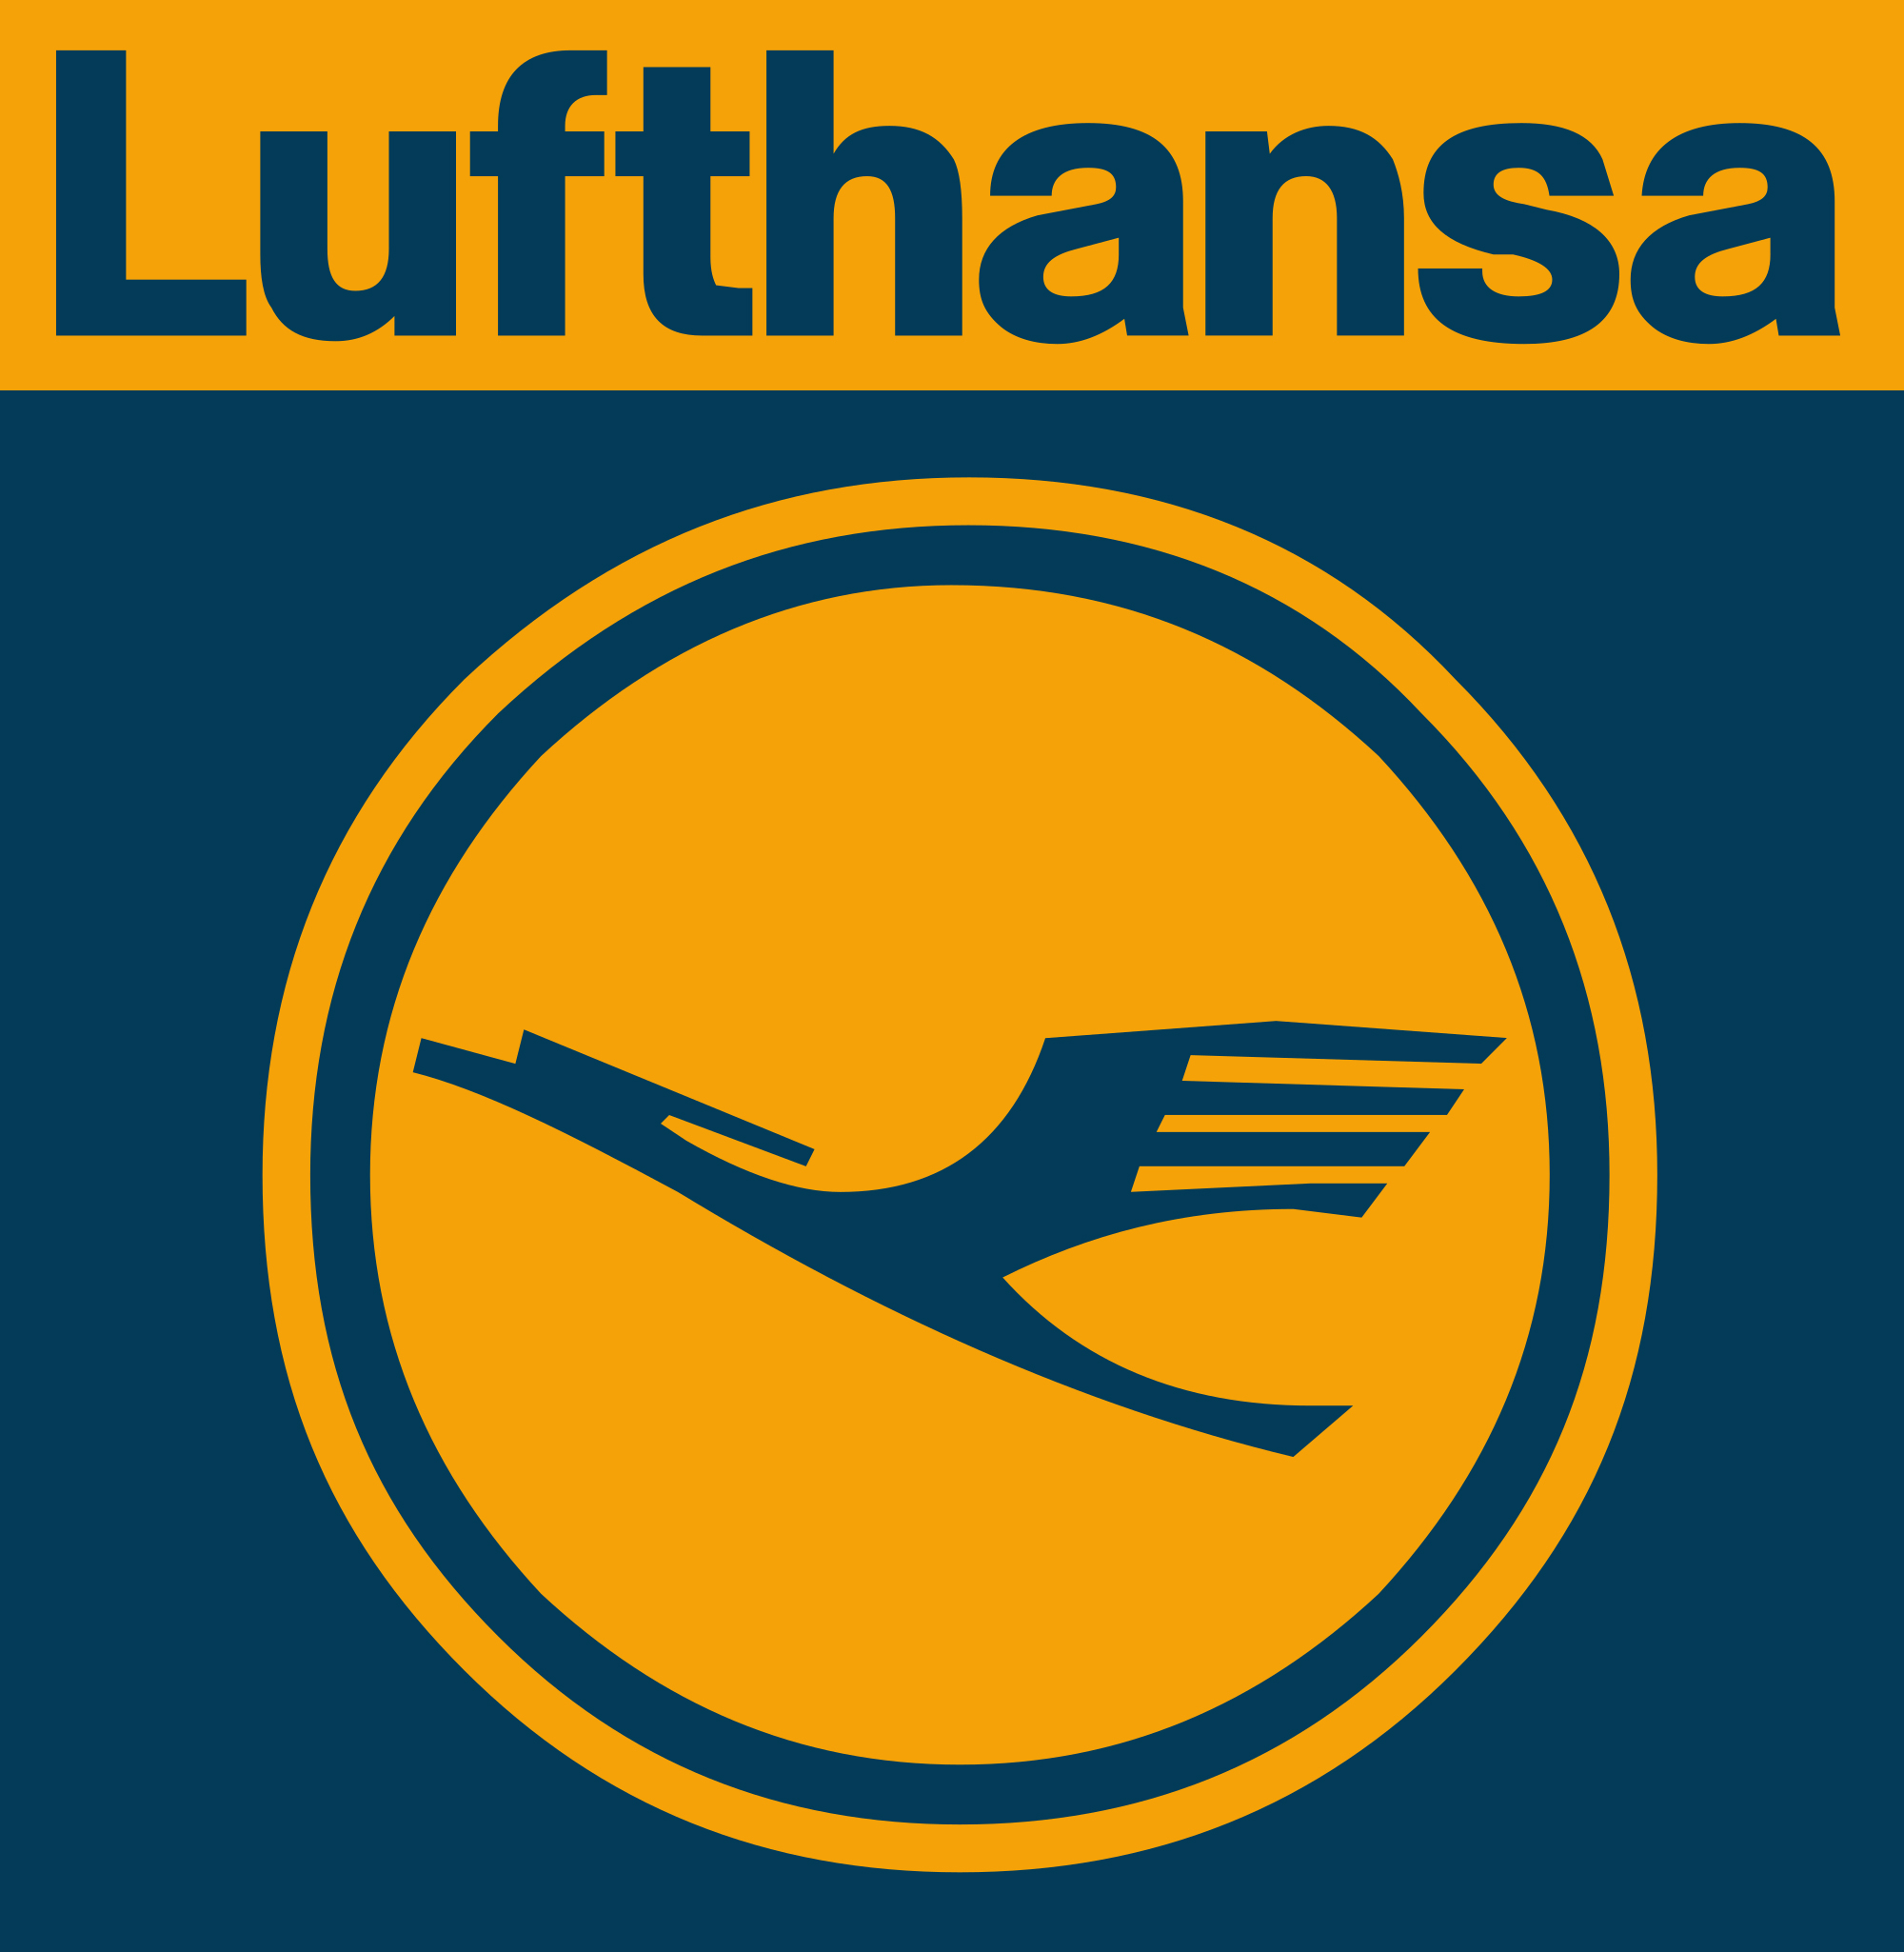 Lufthansa Airlines Logo in a cirlce